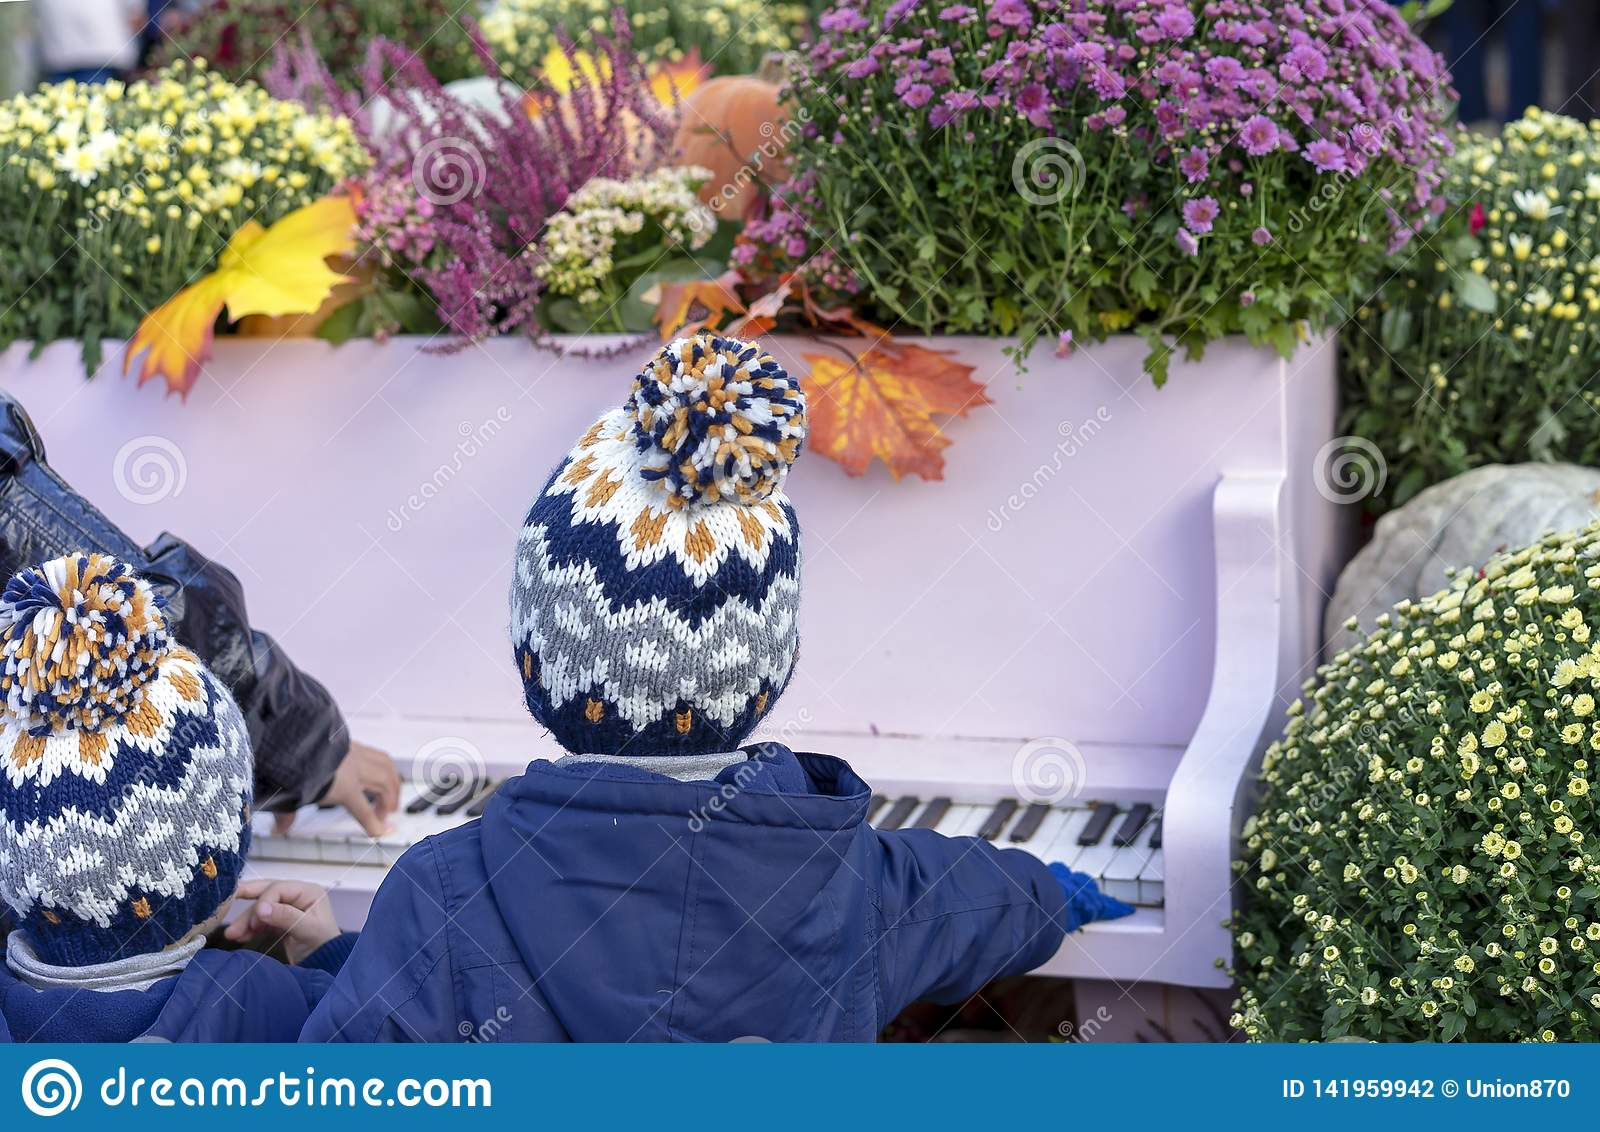 Children in the same hats playing the piano in the autumn garden